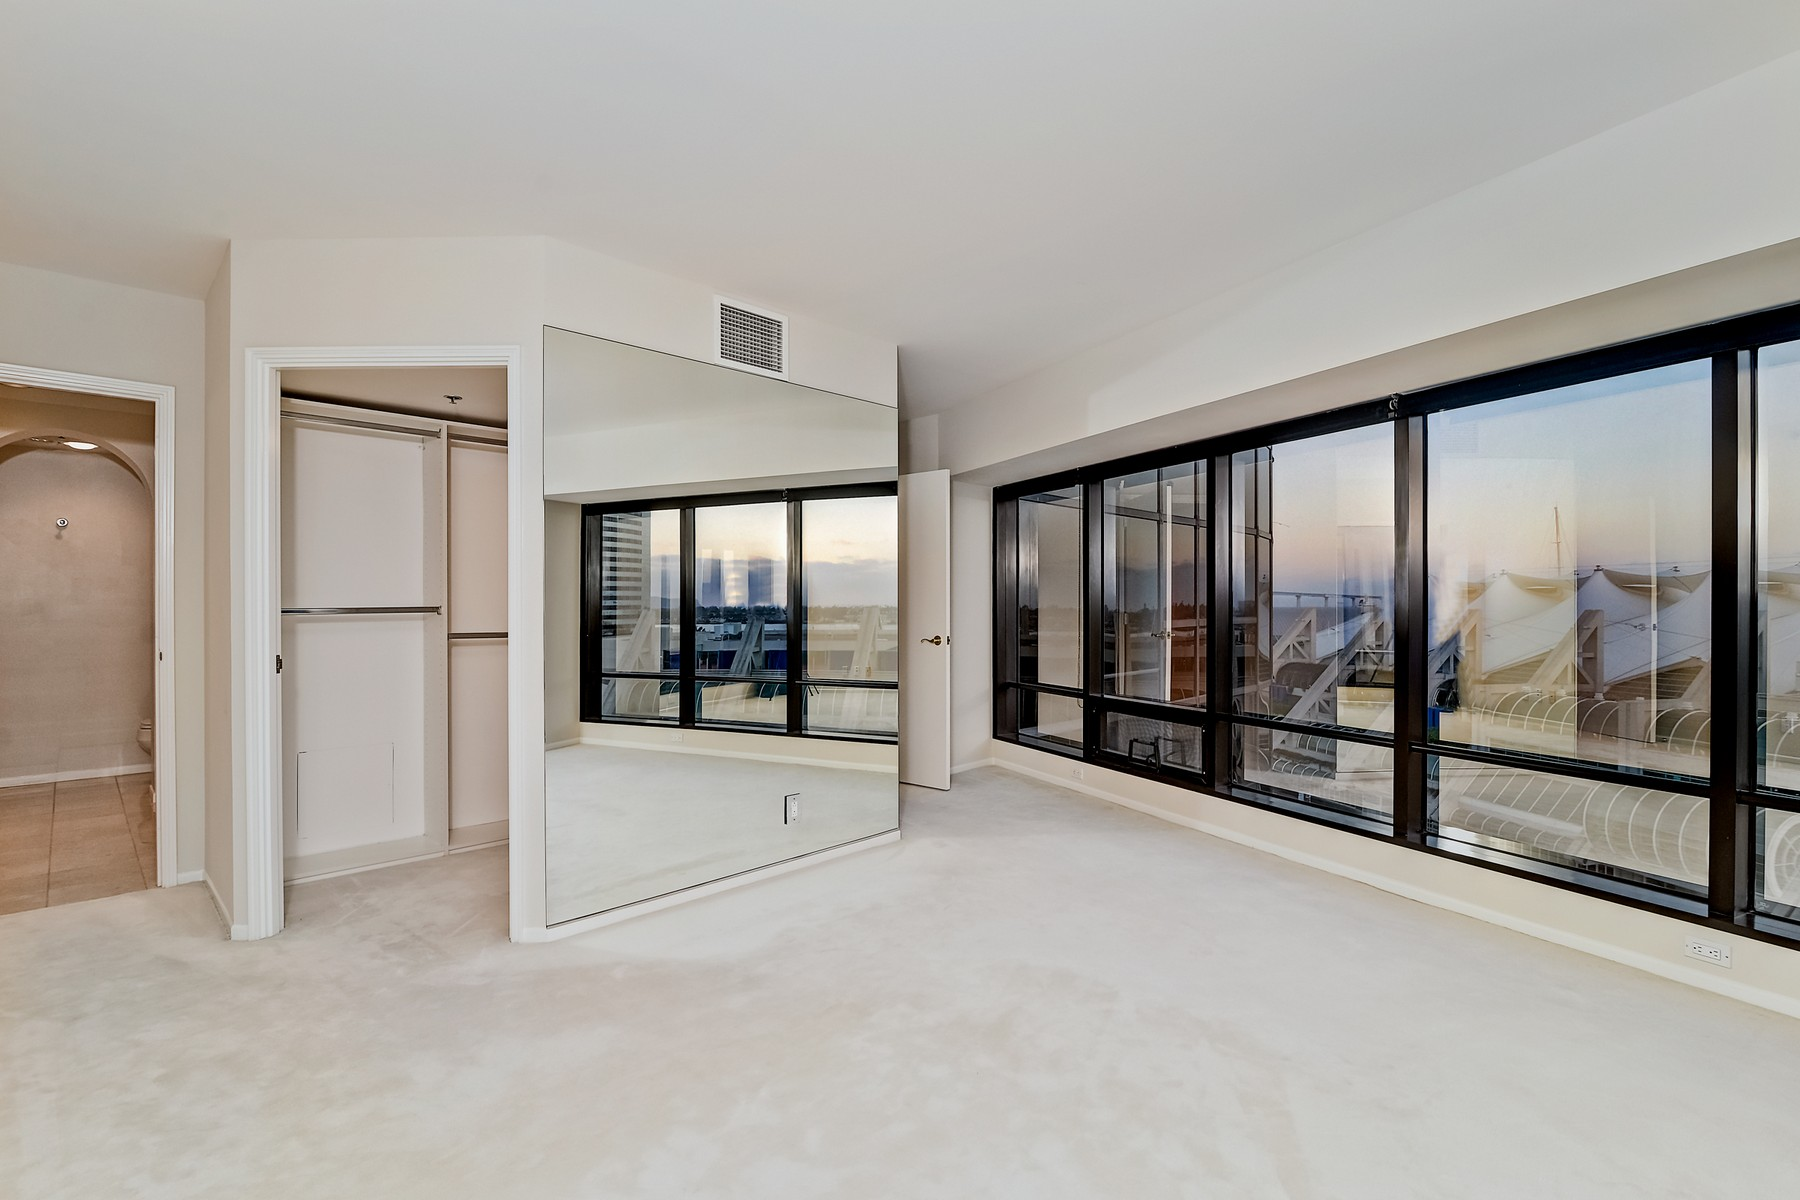 Additional photo for property listing at Harbor Club 200 Harbor Drive 1102 San Diego, California 92101 Estados Unidos